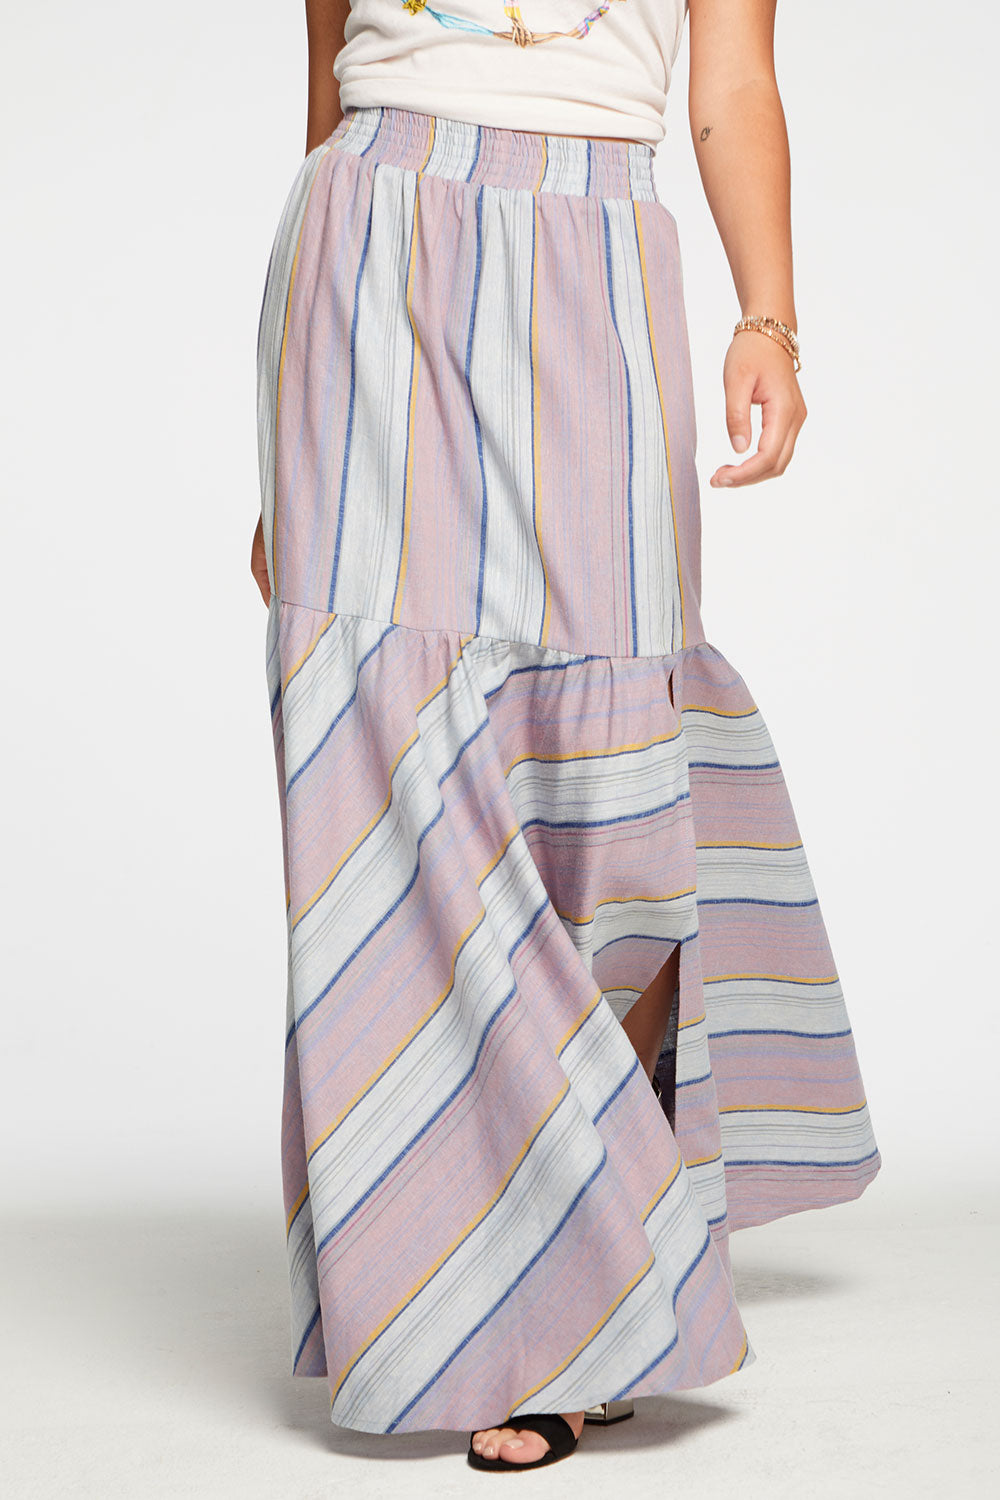 Beachy Linen Tiered Side Slit Maxi Skirt in Stripe